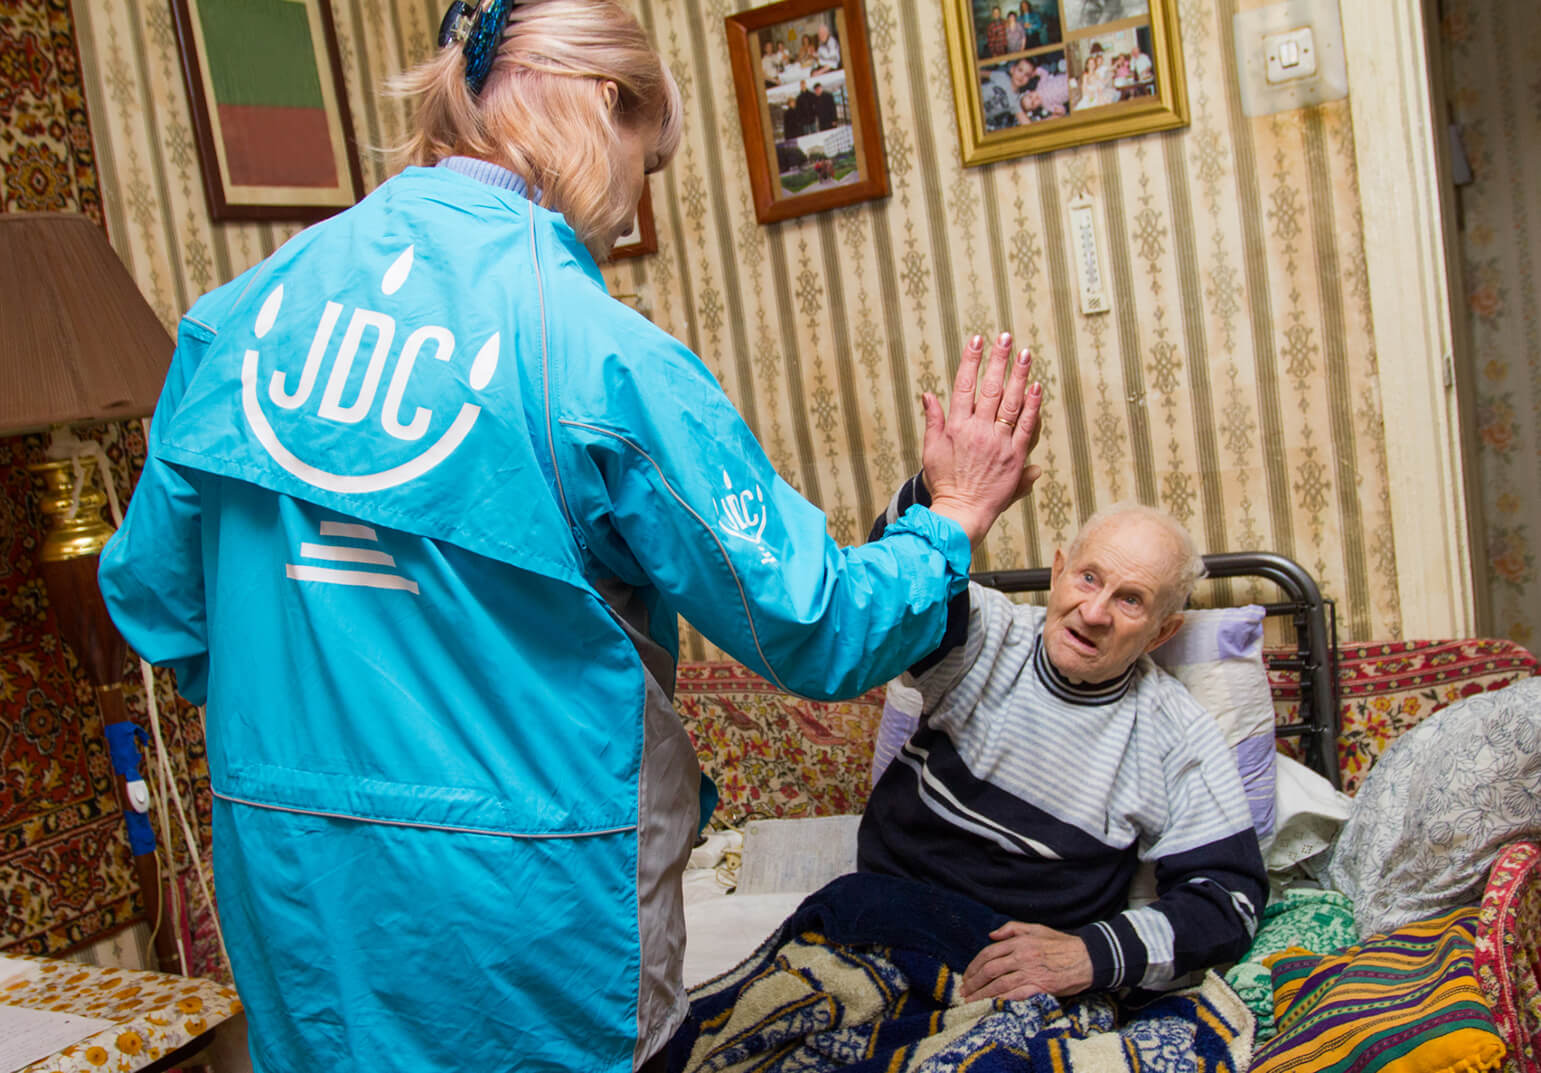 JDC homecare worker high-fiving an elderly male client in the former Soviet Union.